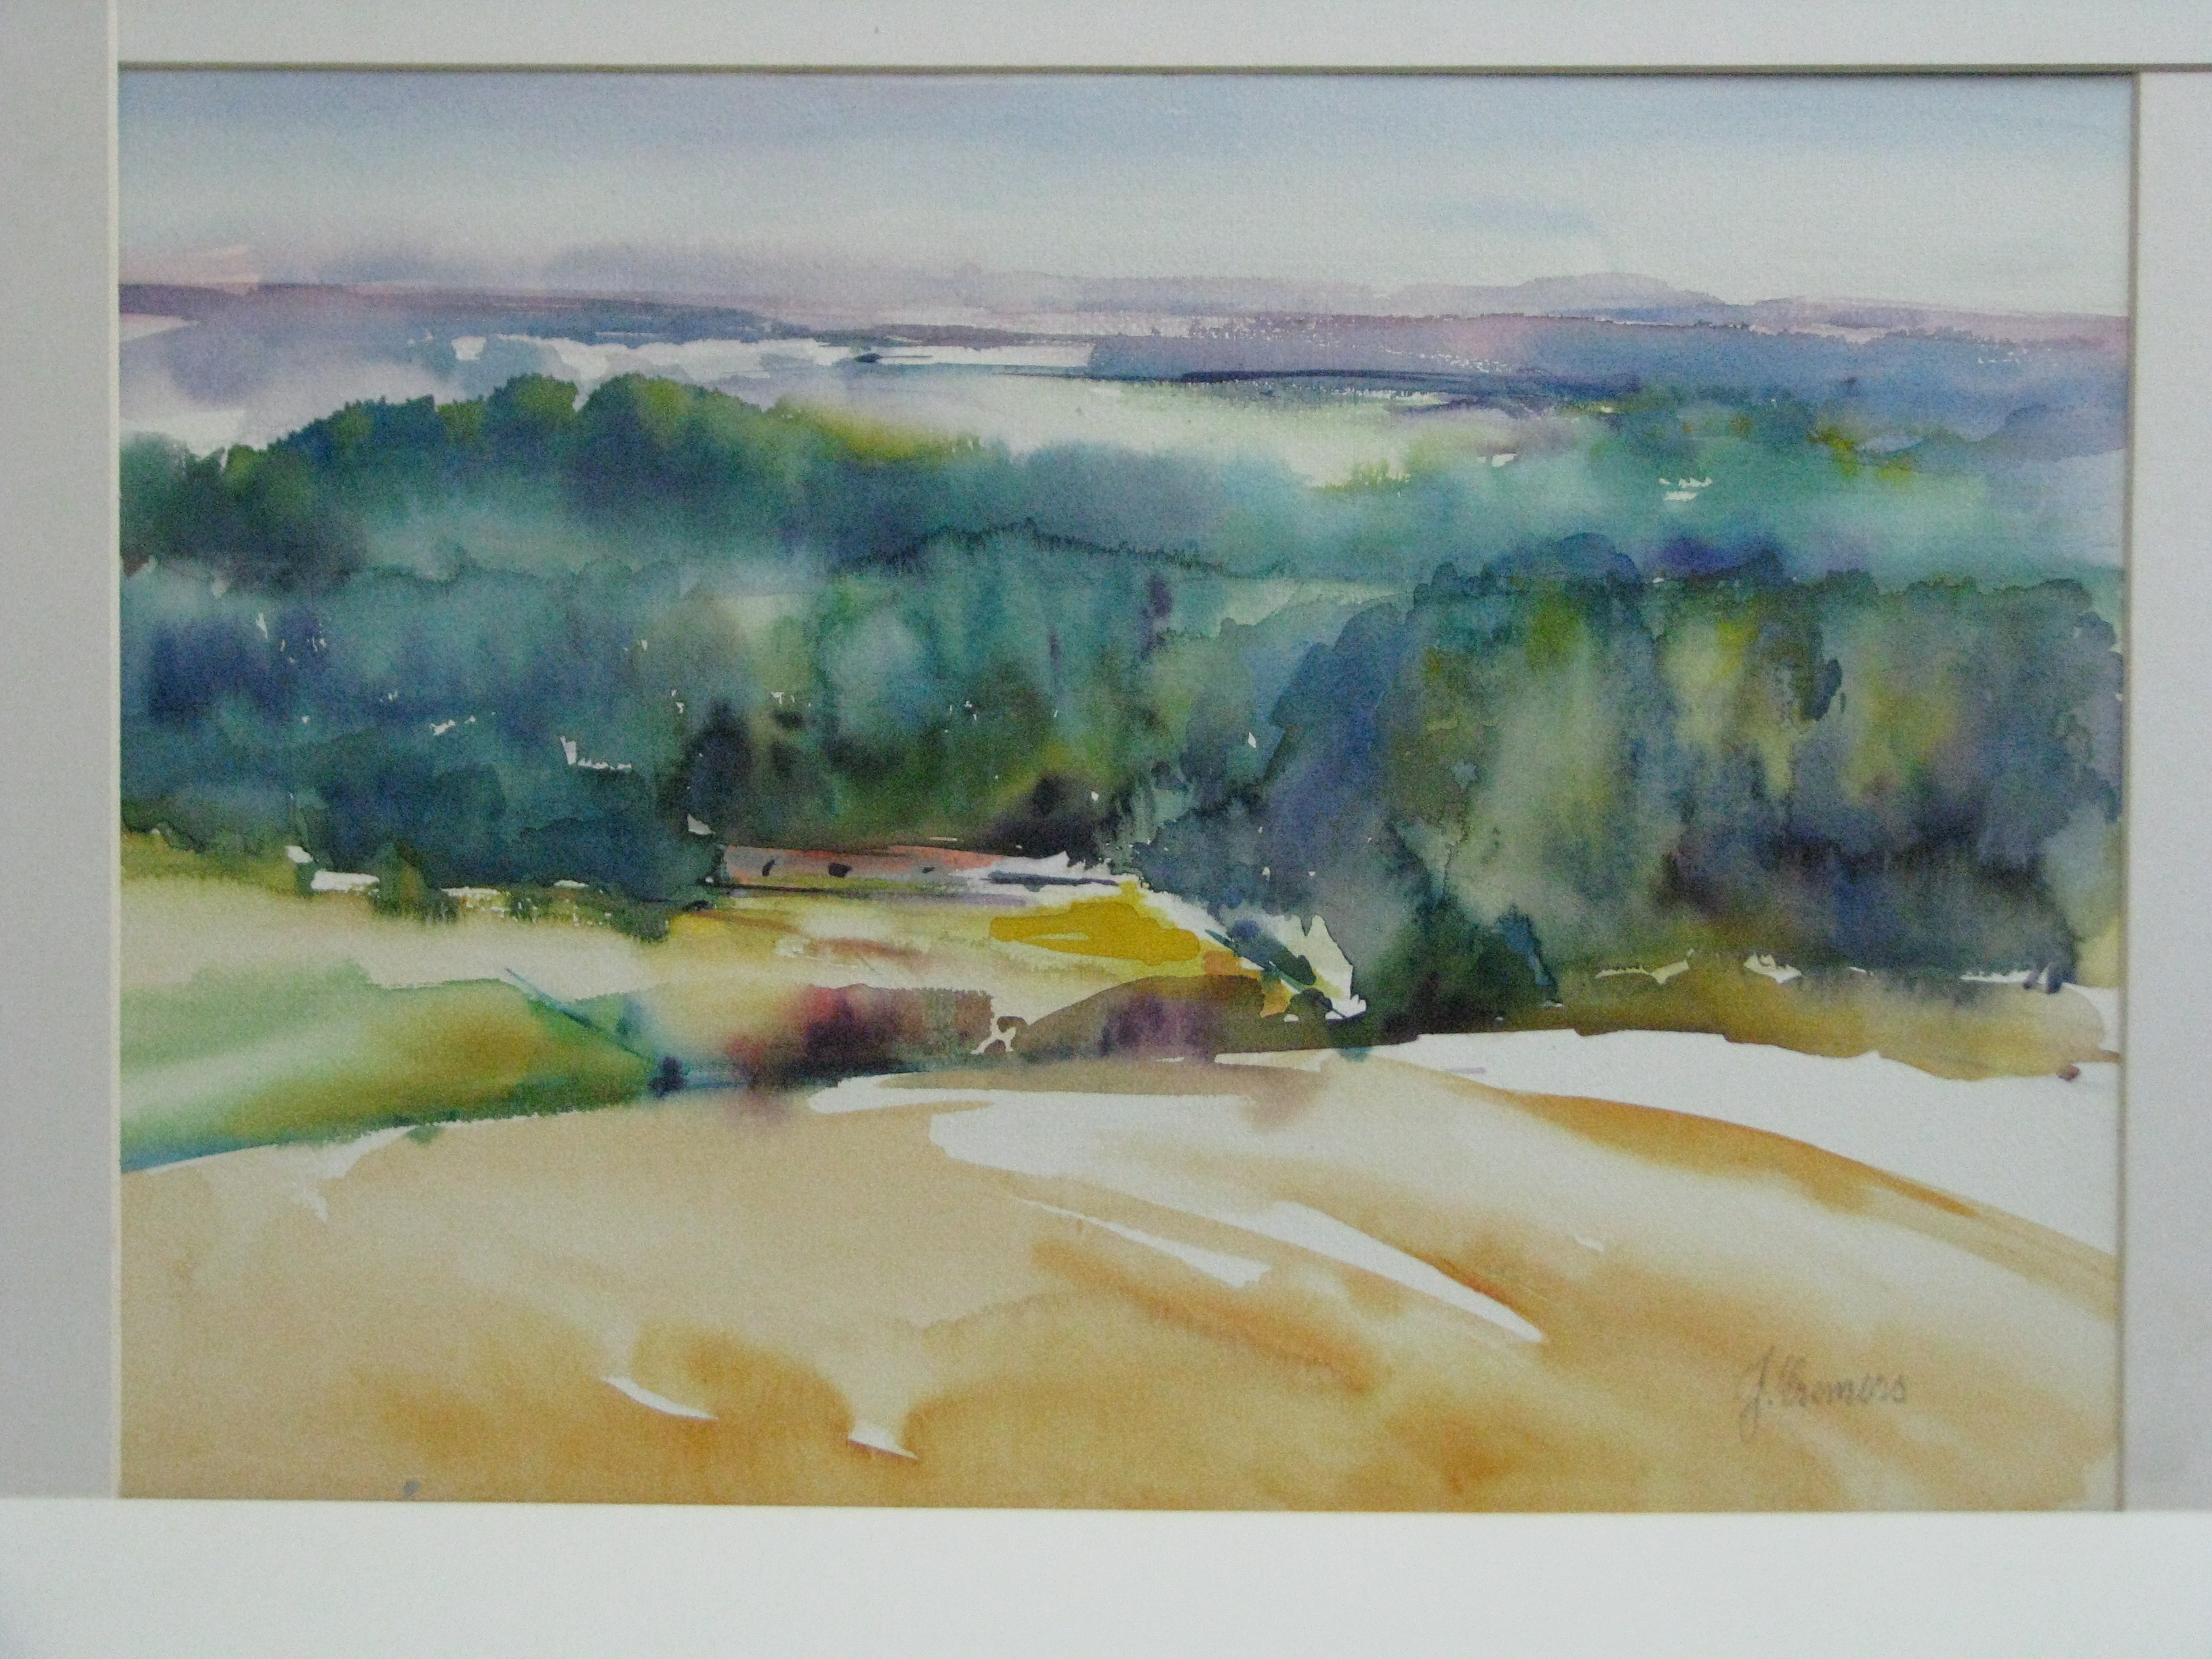 Fromberg afm. hxbr 57x69 cm incl. p.p. 131